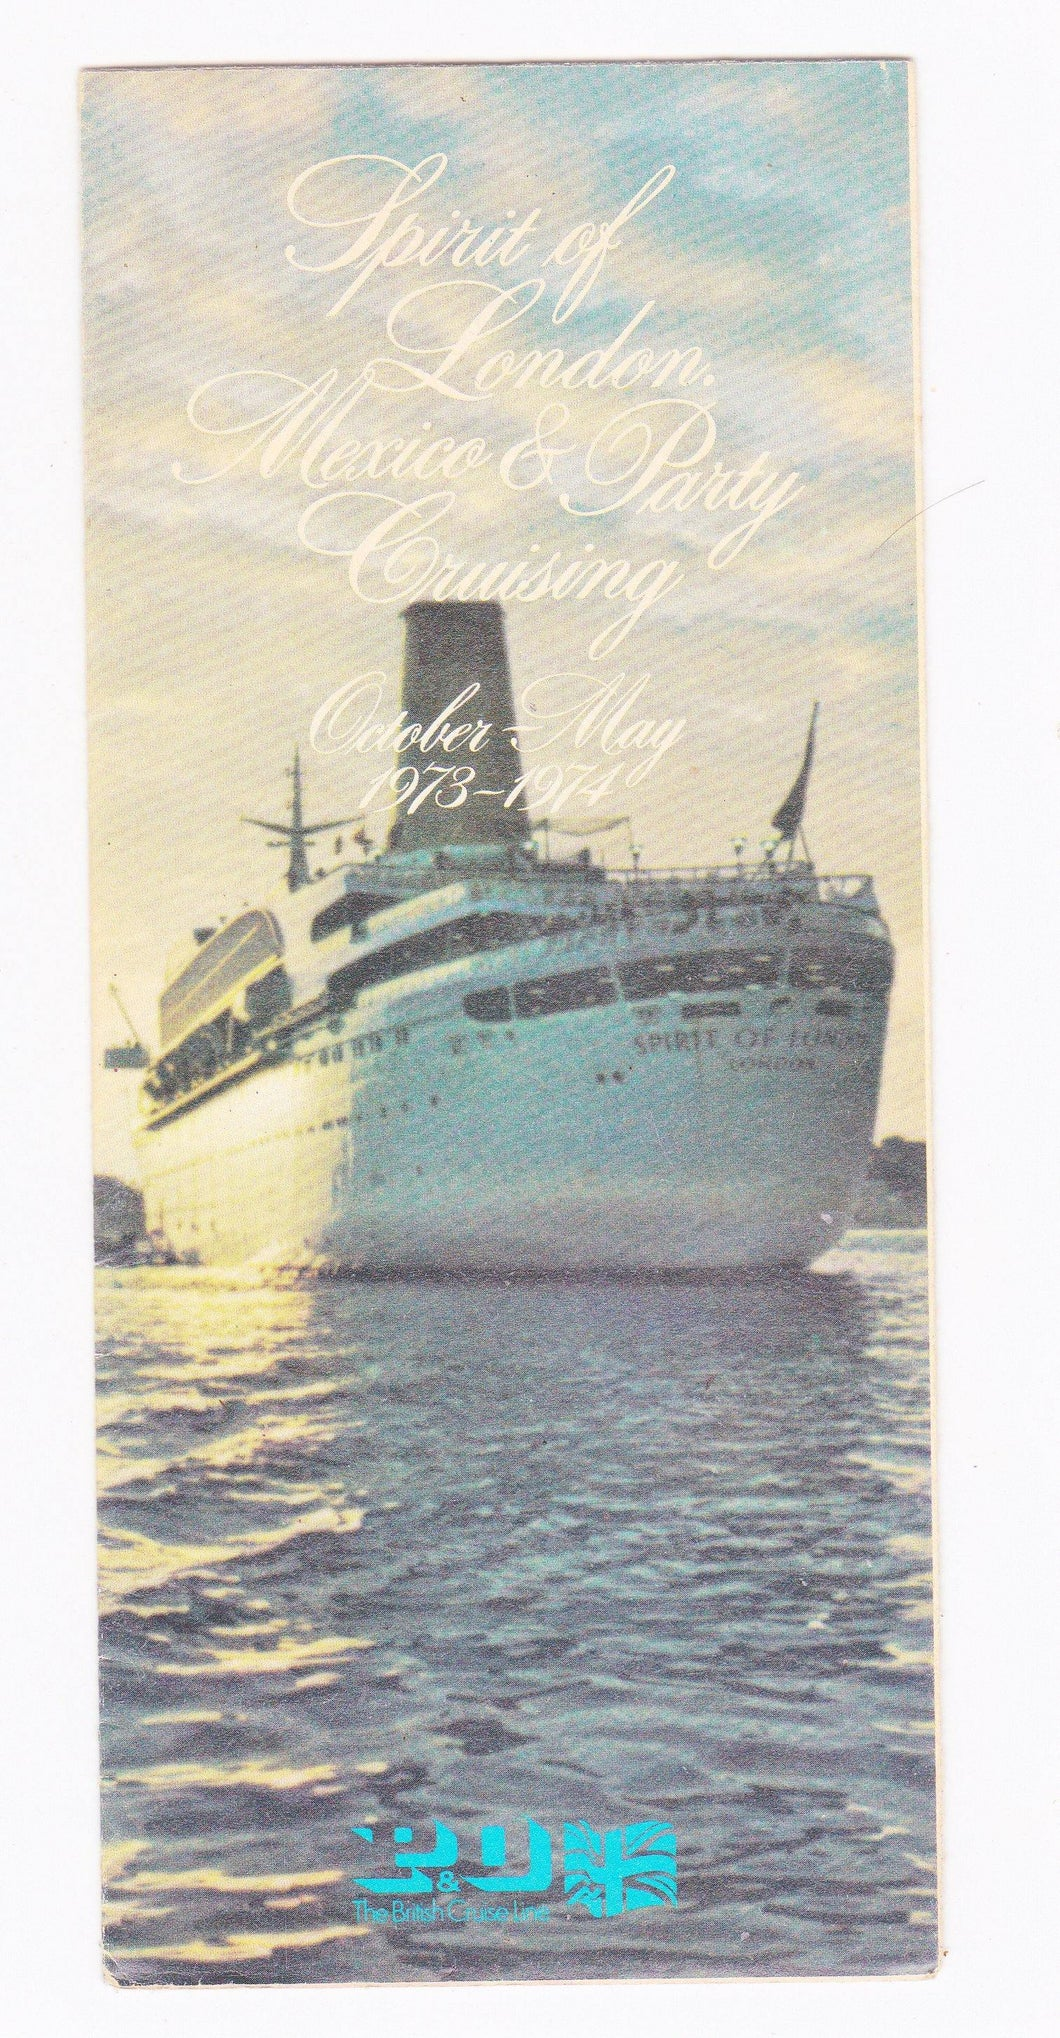 P and O The British Cruise Line Spirit of London 1973-1974 Mexico and Party Cruising Brochure